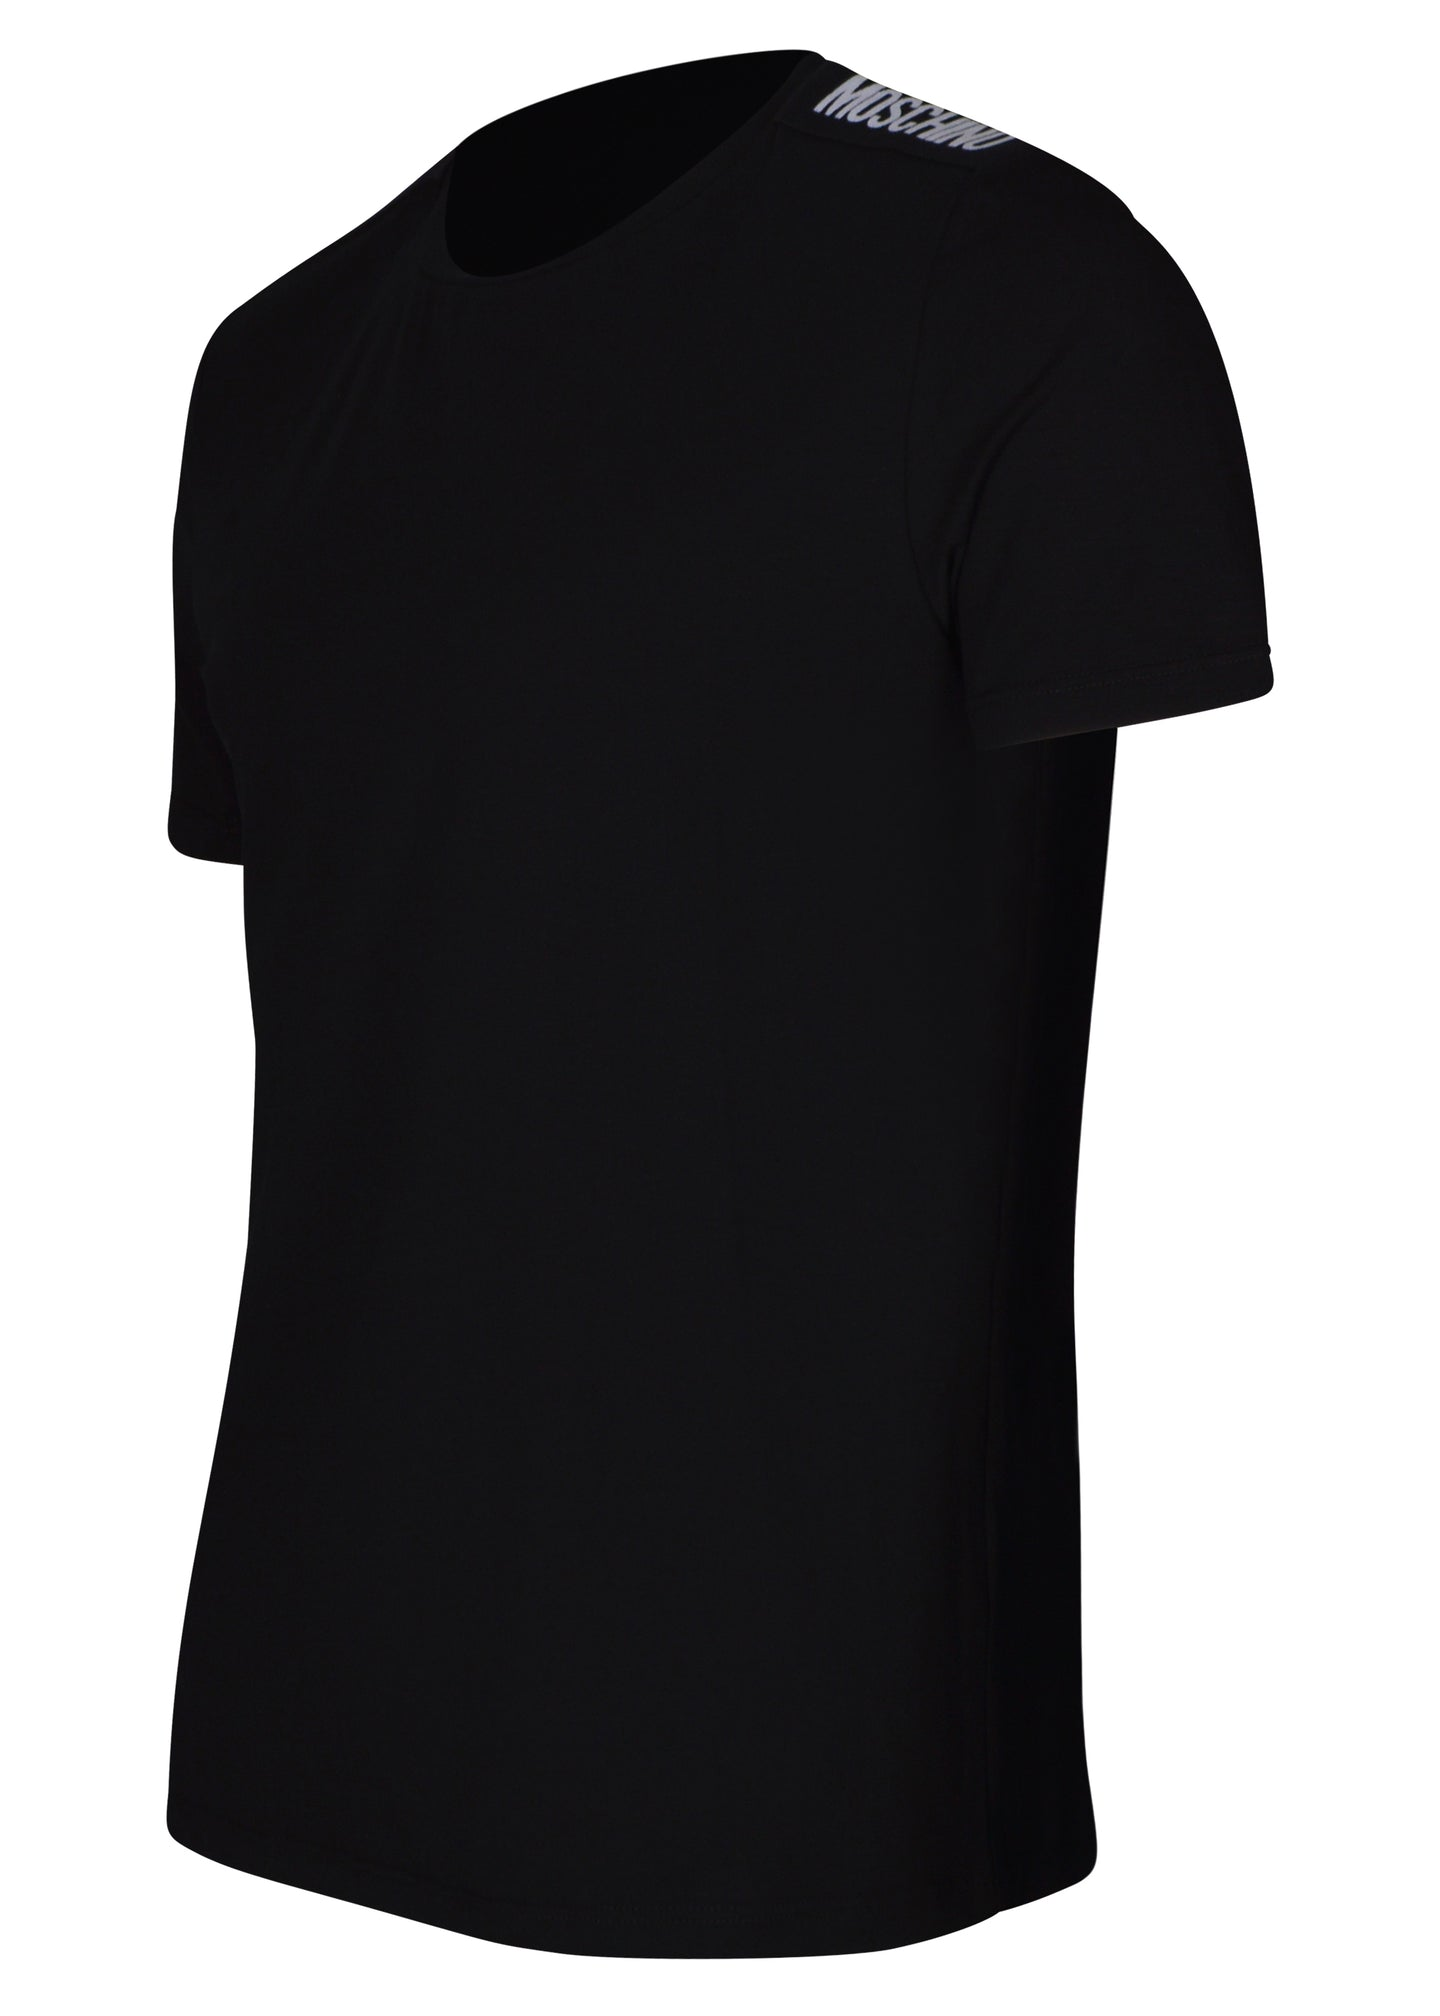 Moschino - Crewneck T-Shirt Monochrome Tape Shoulder Detail - 100115 - MA1921 - Black